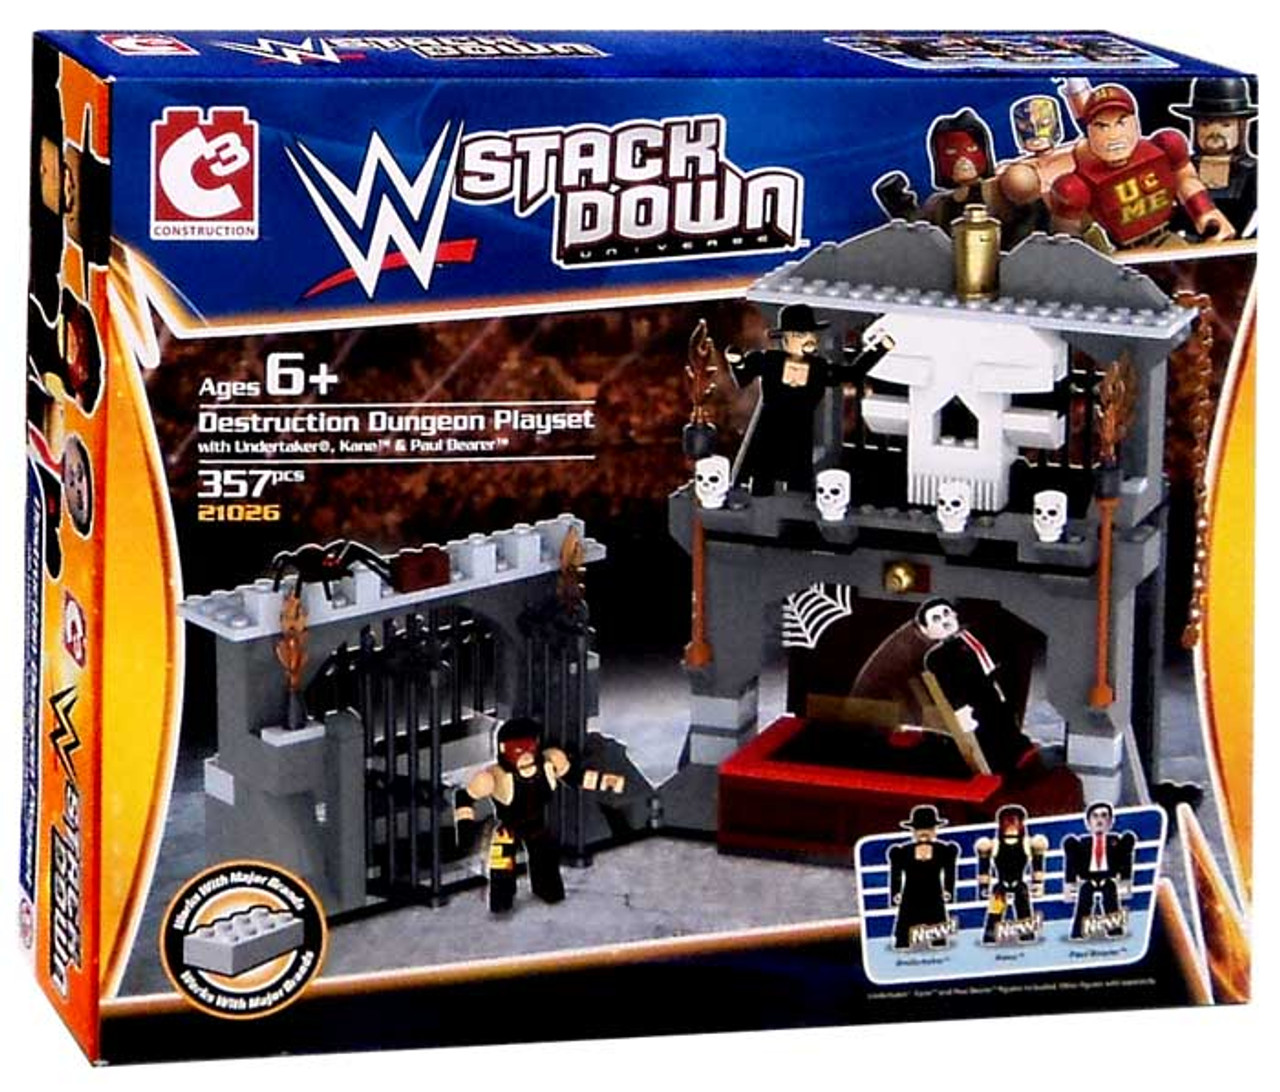 WWE Wrestling C3 Construction StackDown Destruction Dungeon Playset